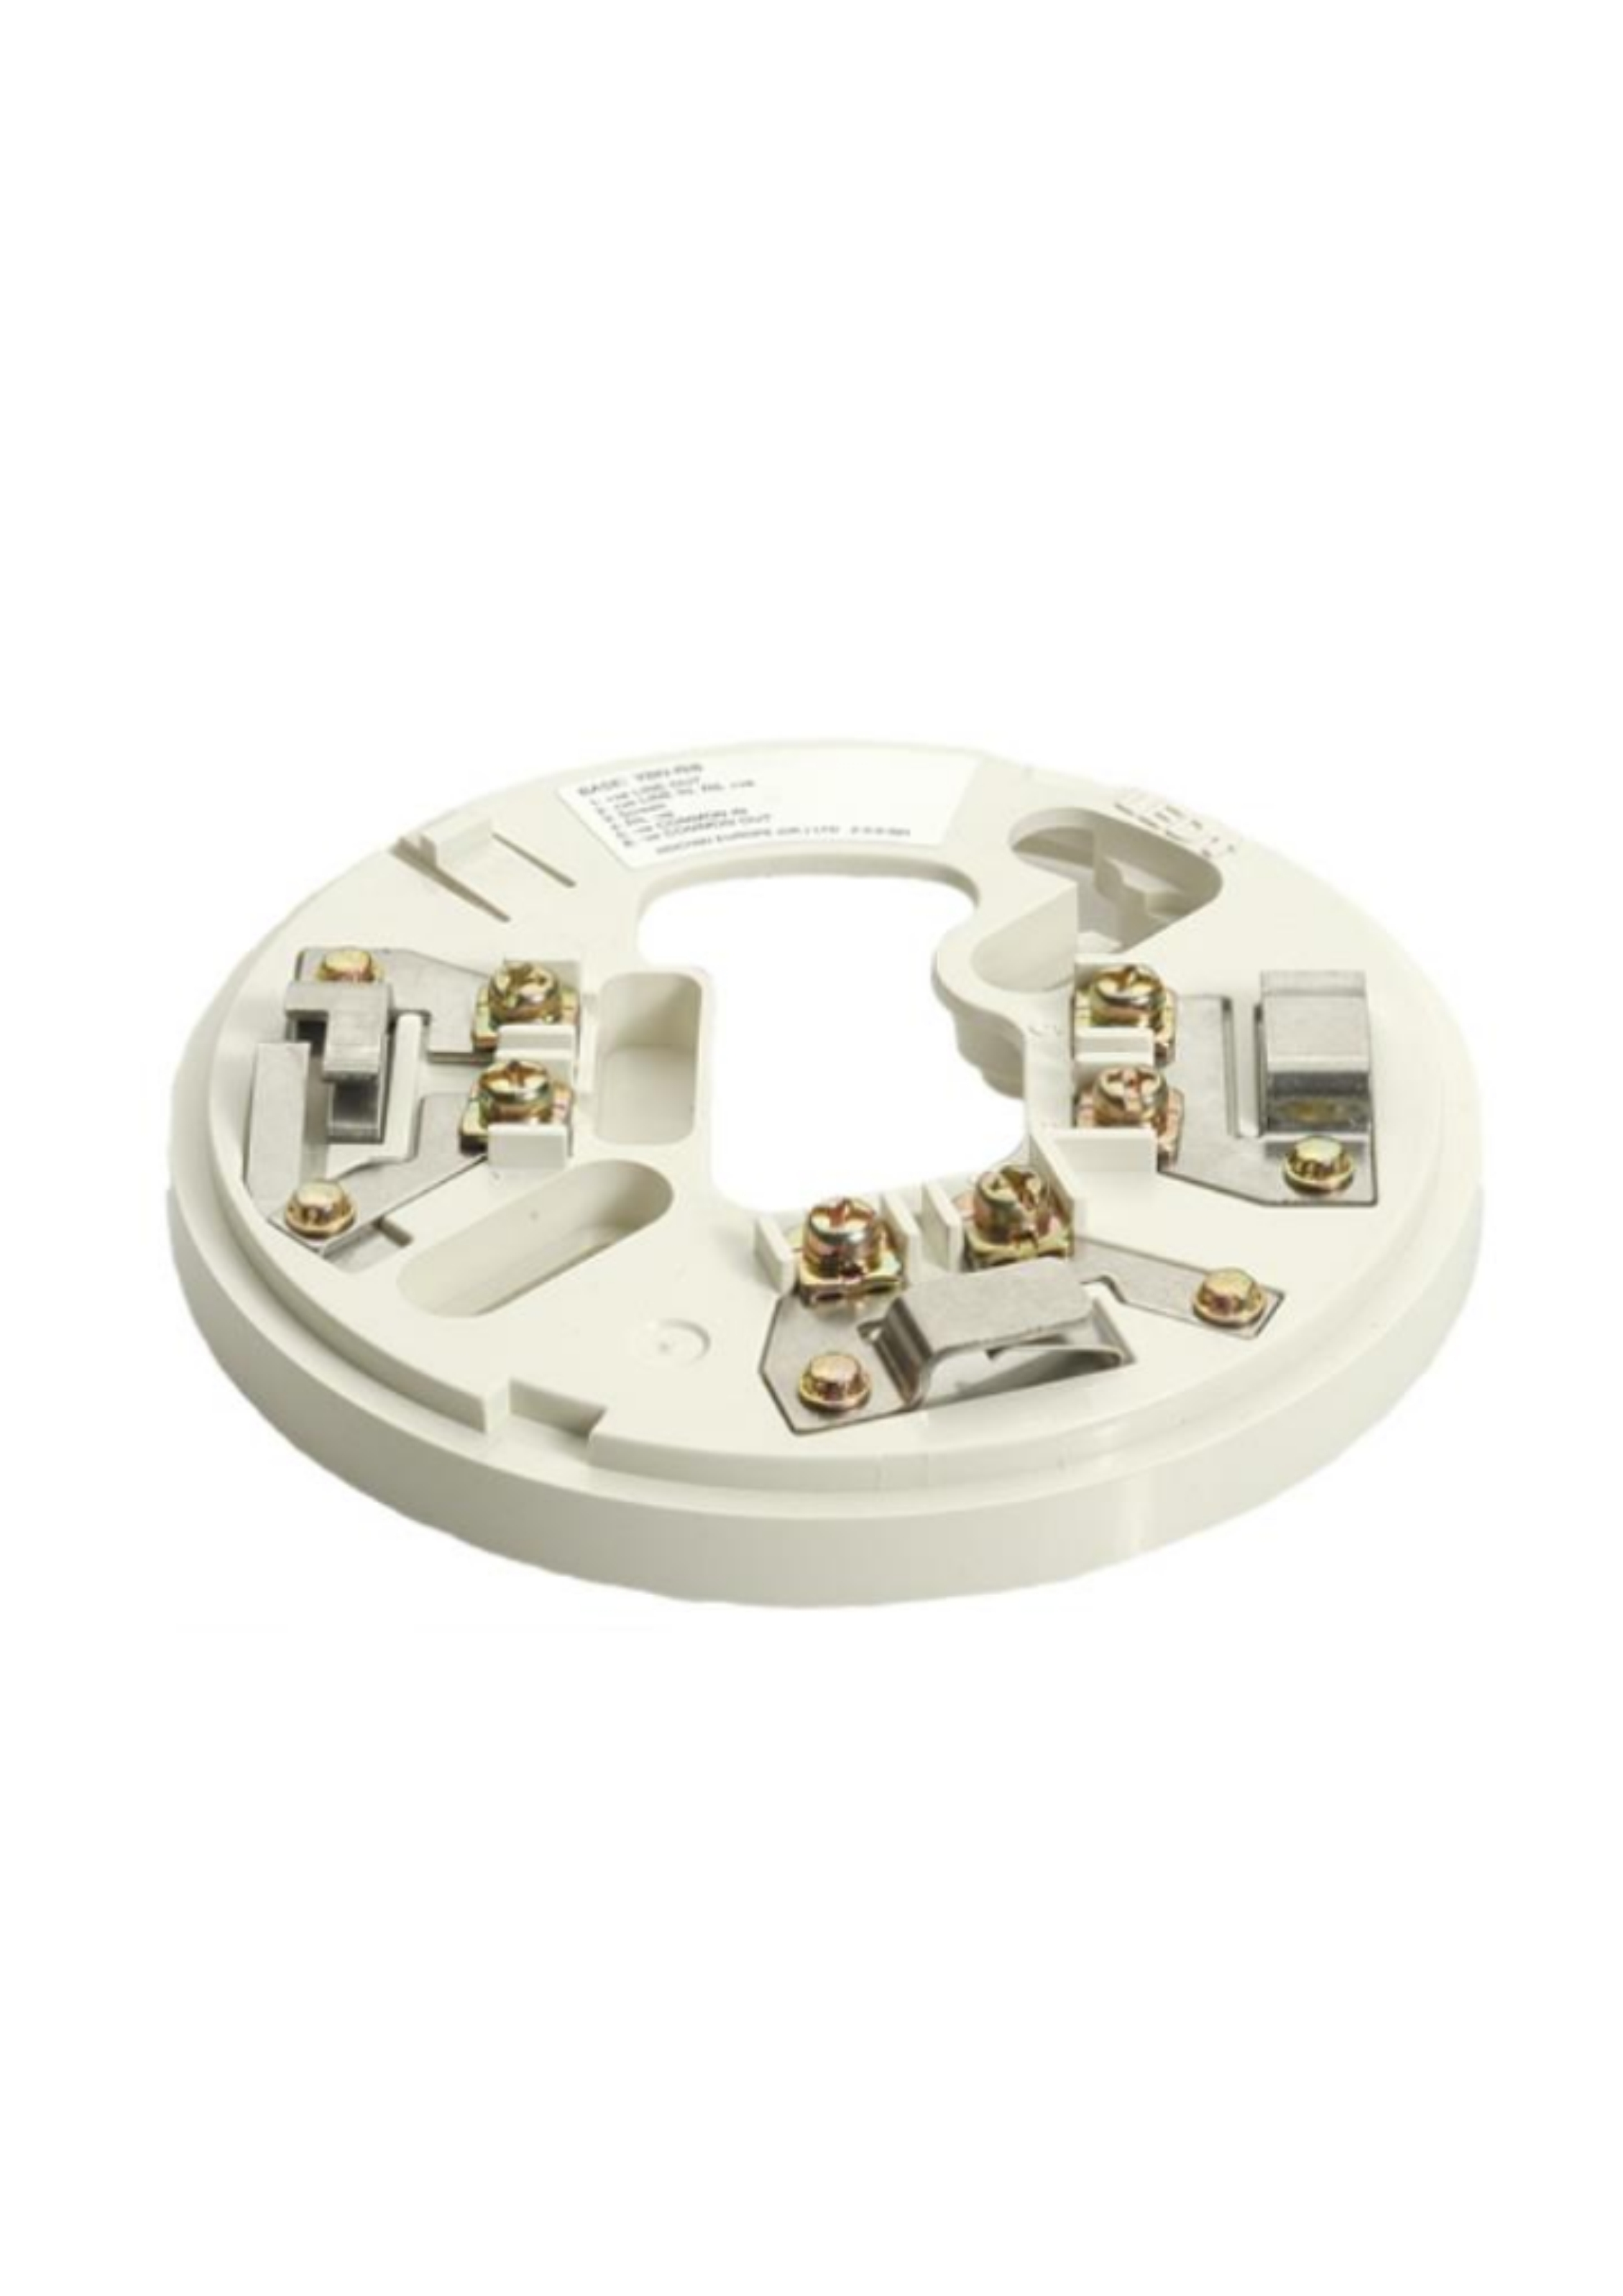 Conventional Relay Base Non-Latching - white 12261...